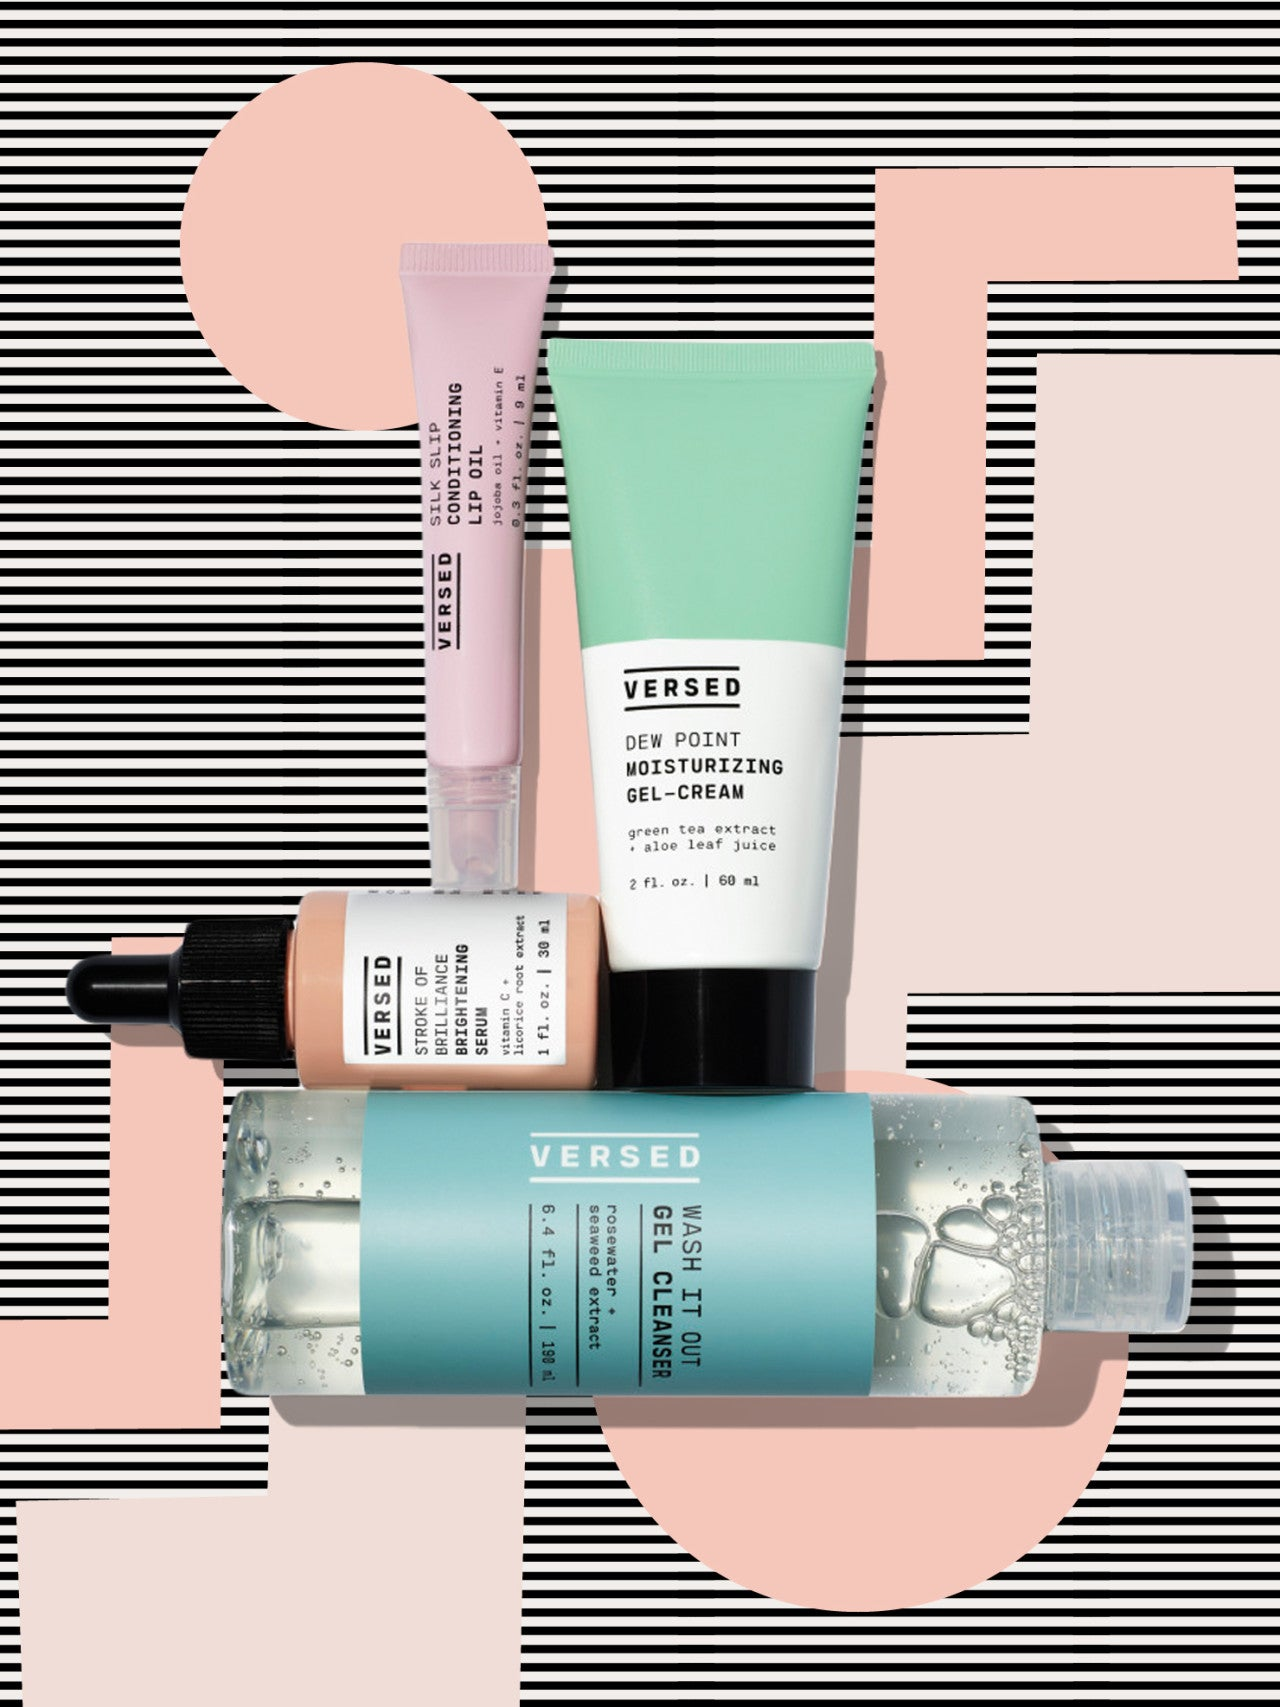 The Trending (Under $20!) Skincare Line That'll Rival Glossier